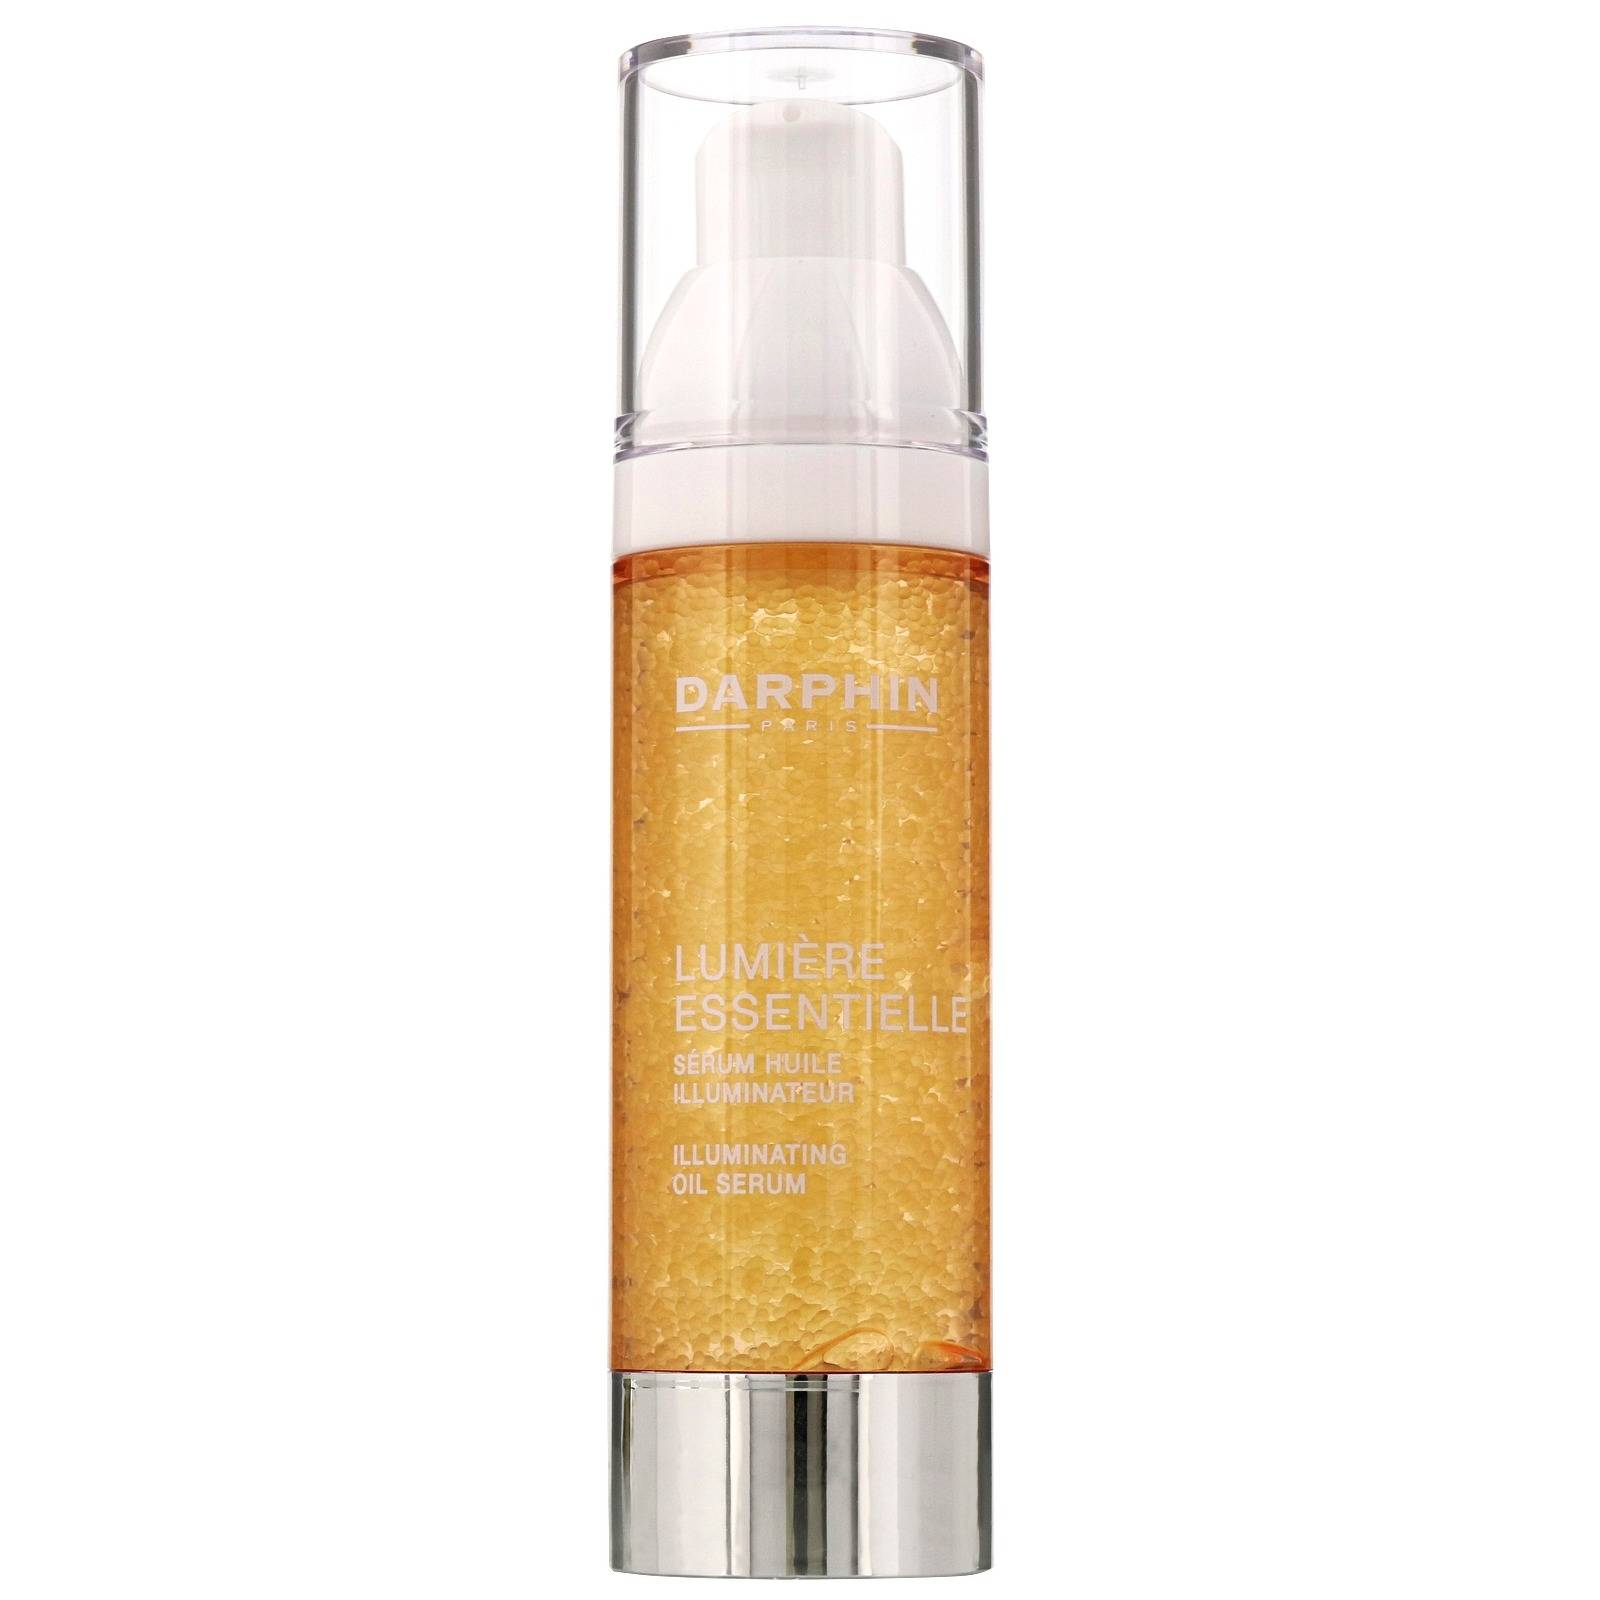 Darphin Serums Lumiere Essentielle siero 30ml